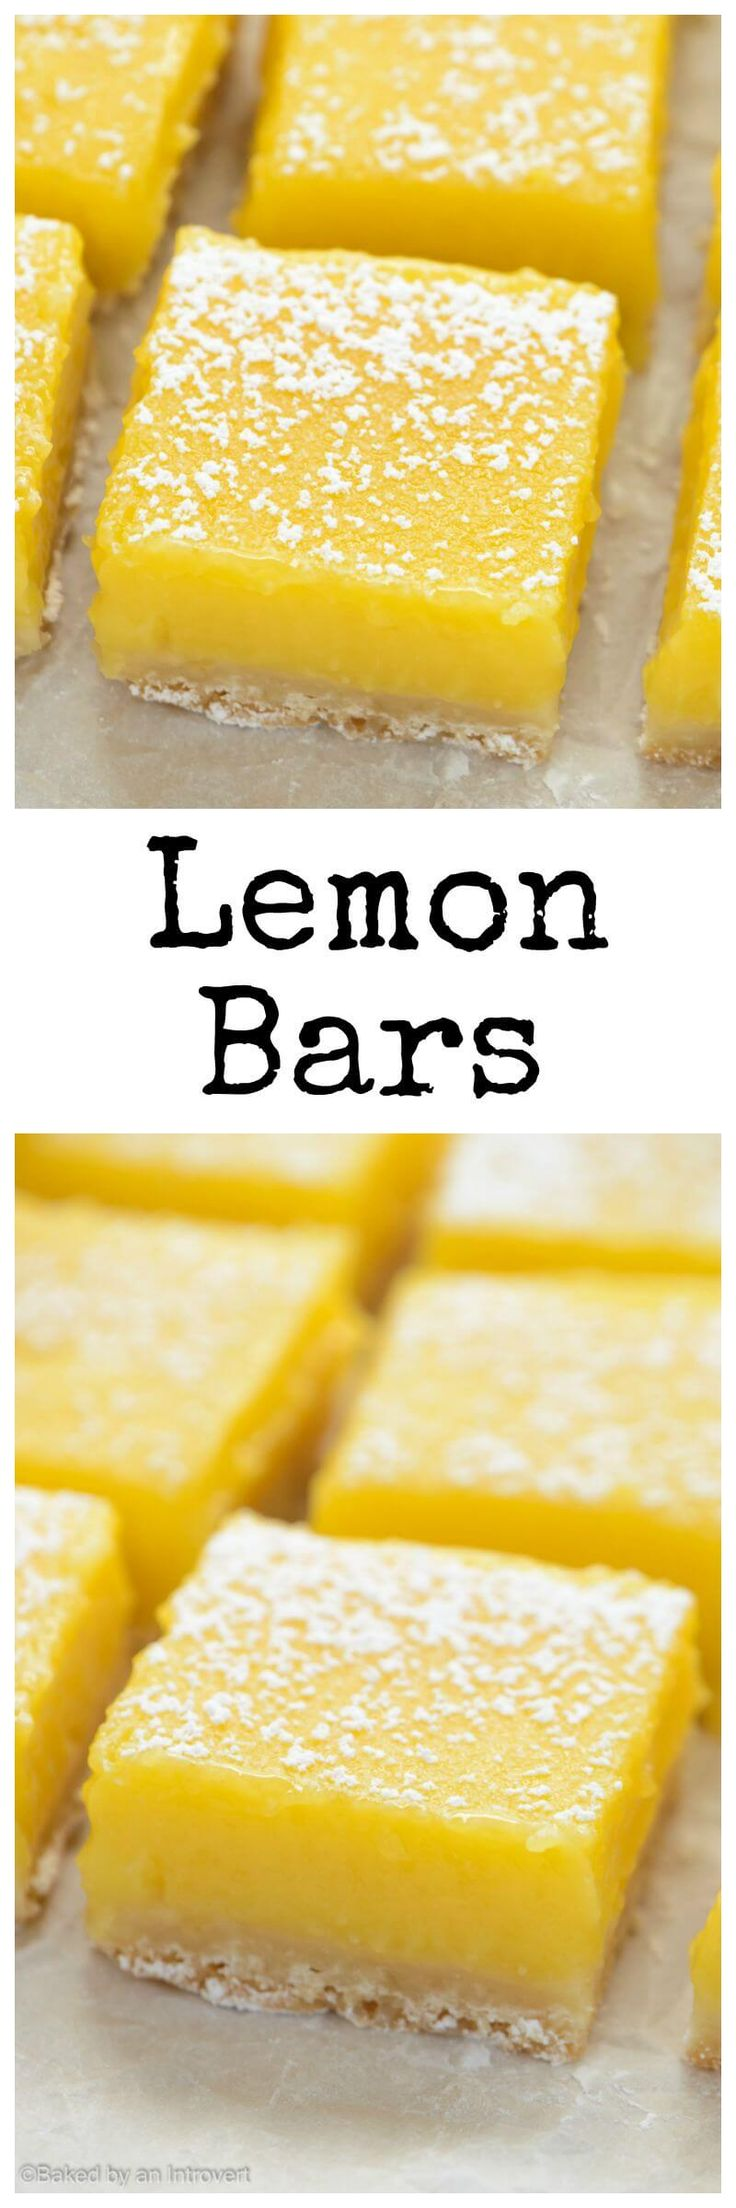 These simple lemon bars are sure to win your heart. They're zesty, sweet, and beyond easy to make!